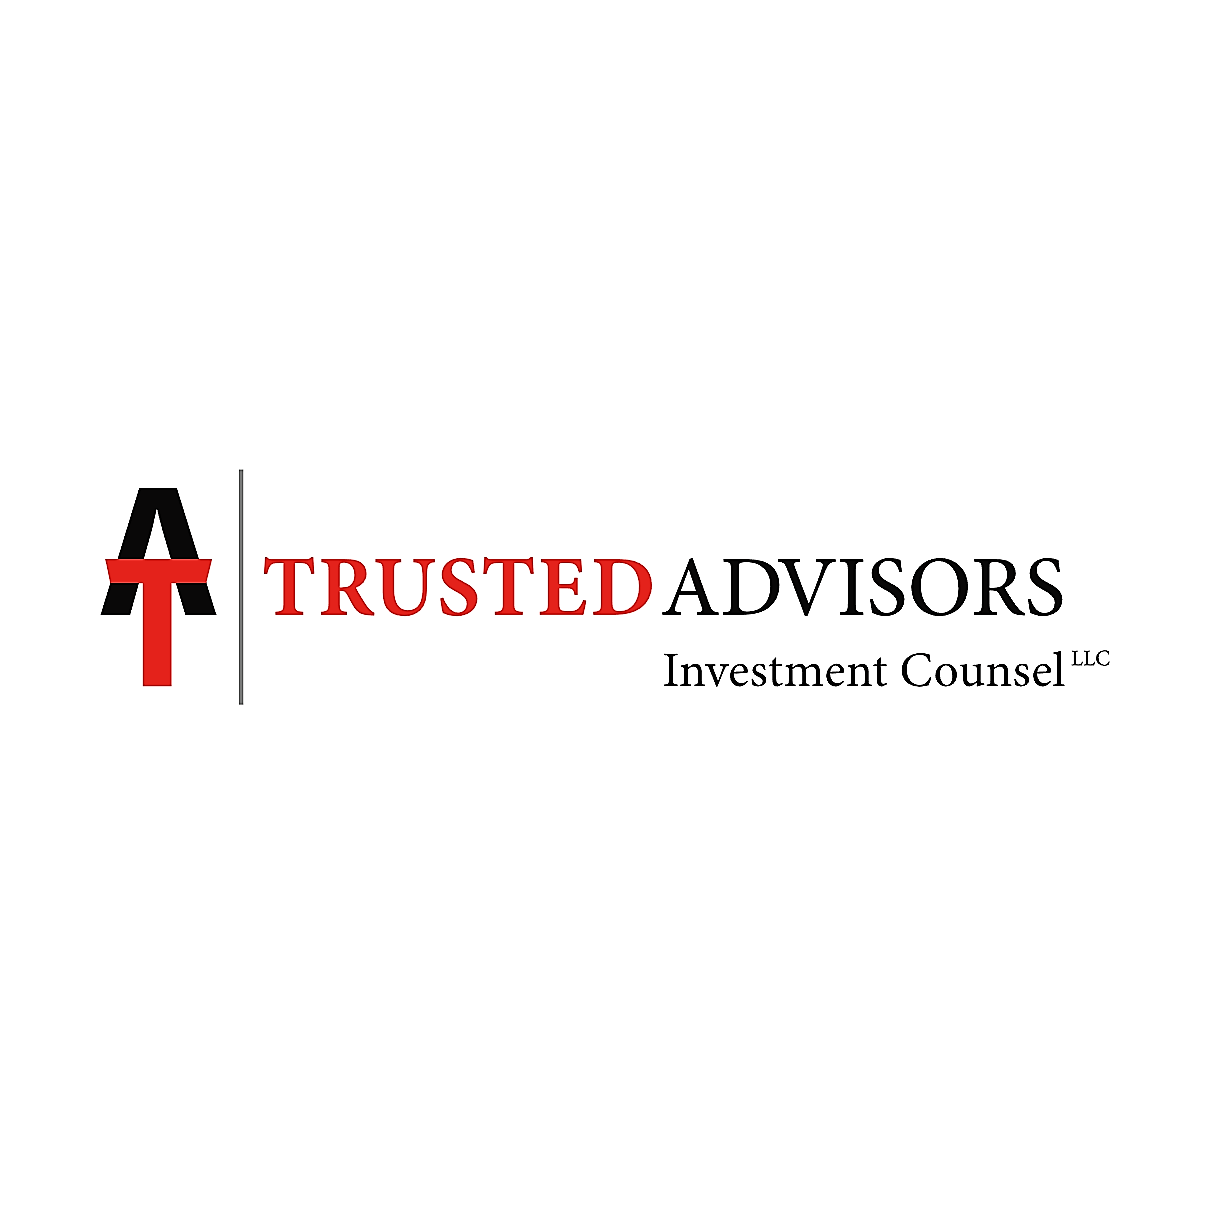 Trusted Advisors Investment Counsel